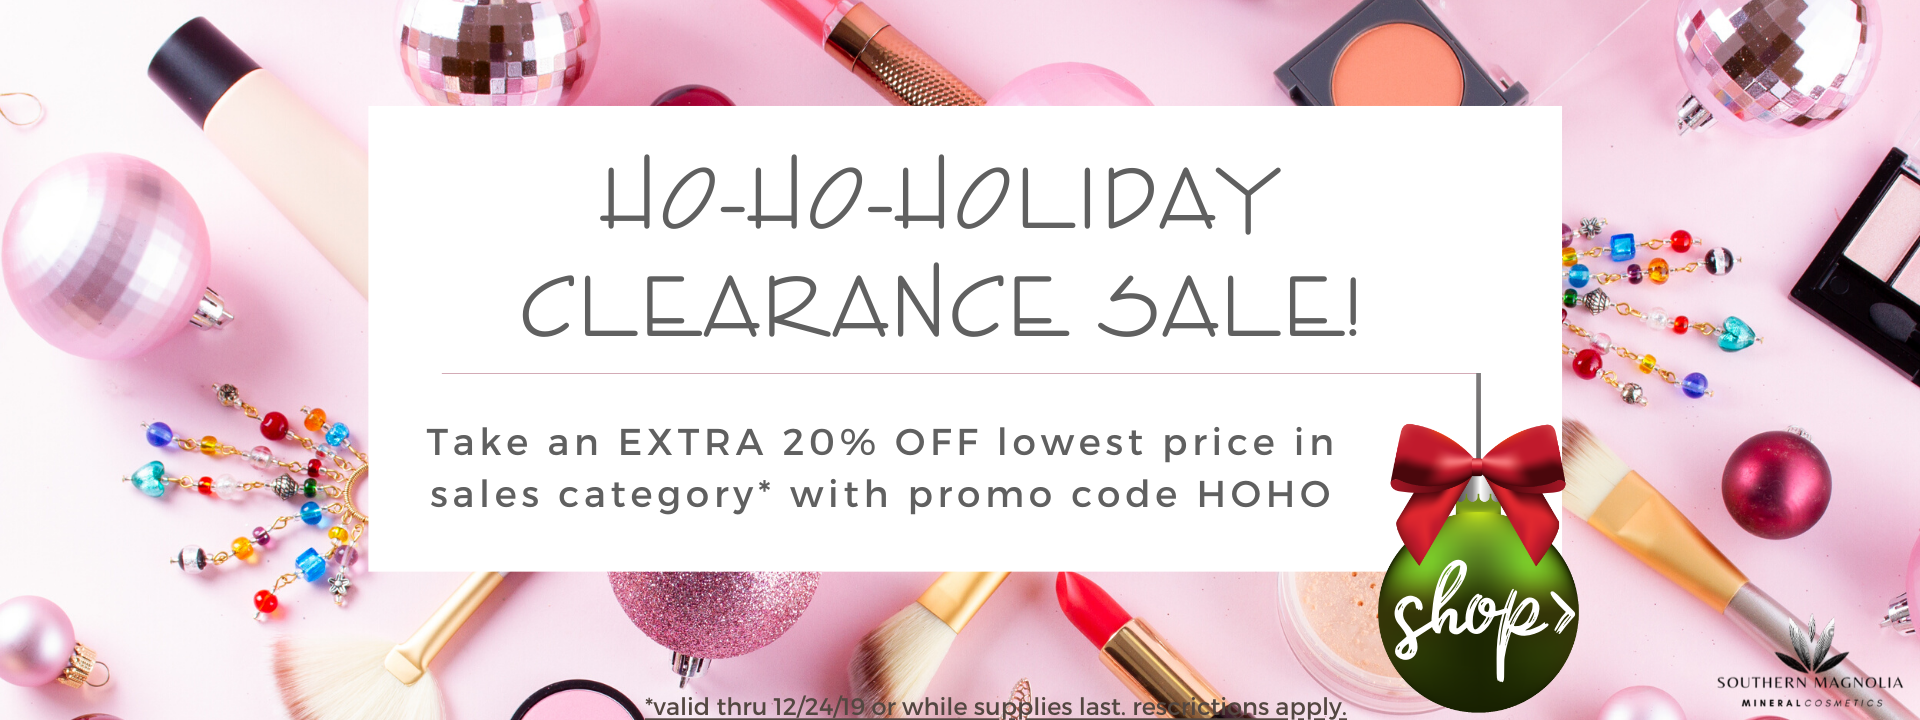 christmas-clearance-sale-retail-banner-1920.png